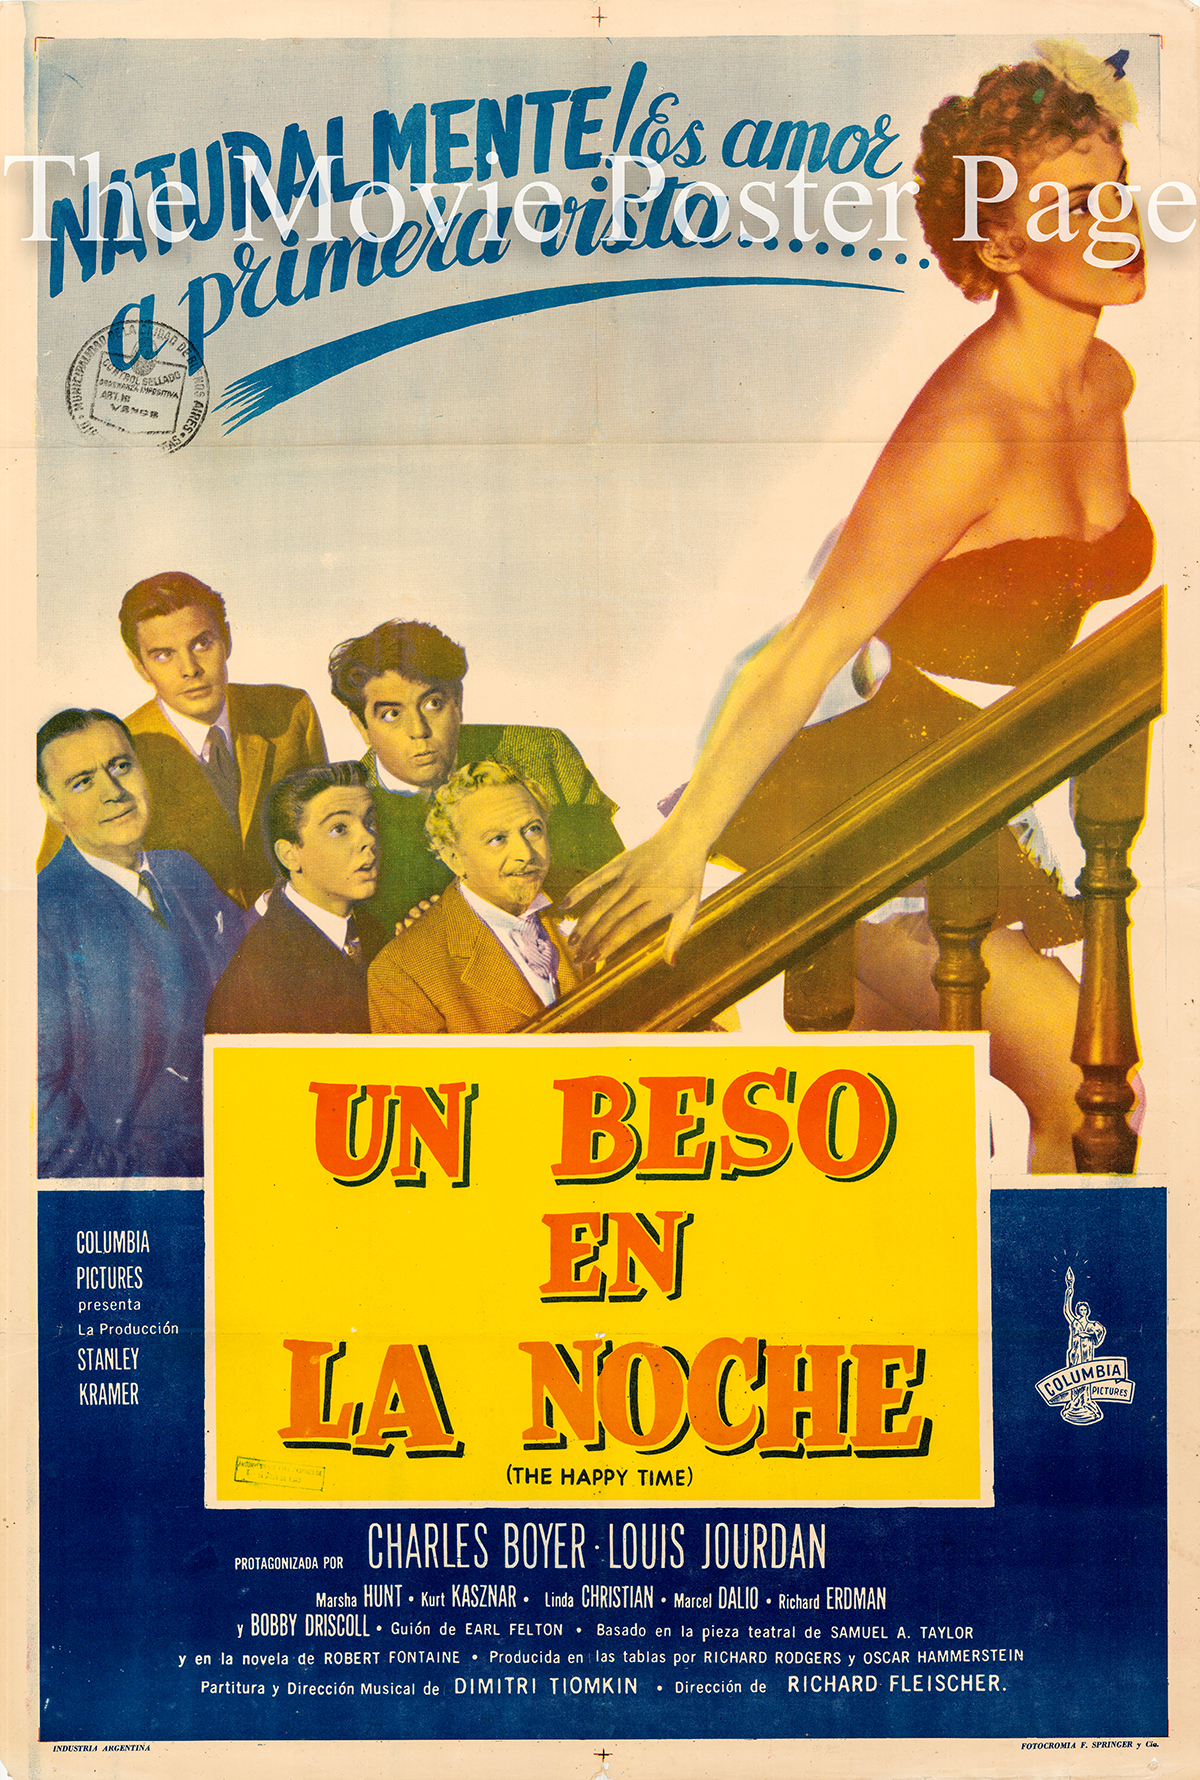 Pictured is an Argentine one-sheet poster for the 1952 Richard Fleischer film The Happy Time starring Charles Boyer as Jacques Bonnard.